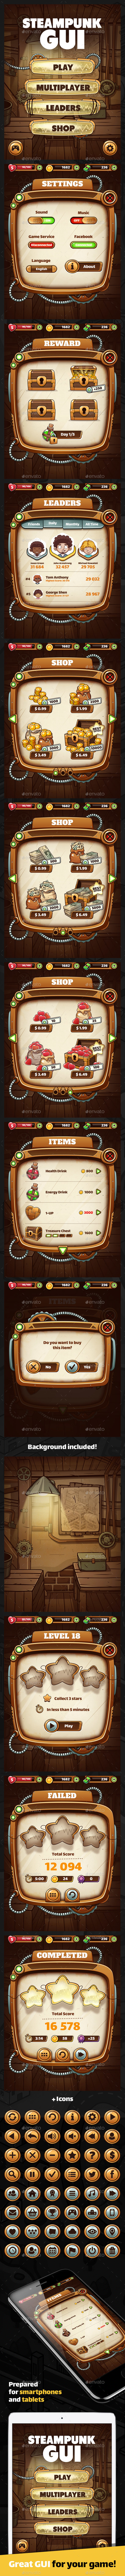 GraphicRiver Steampunk Game GUI 20499880